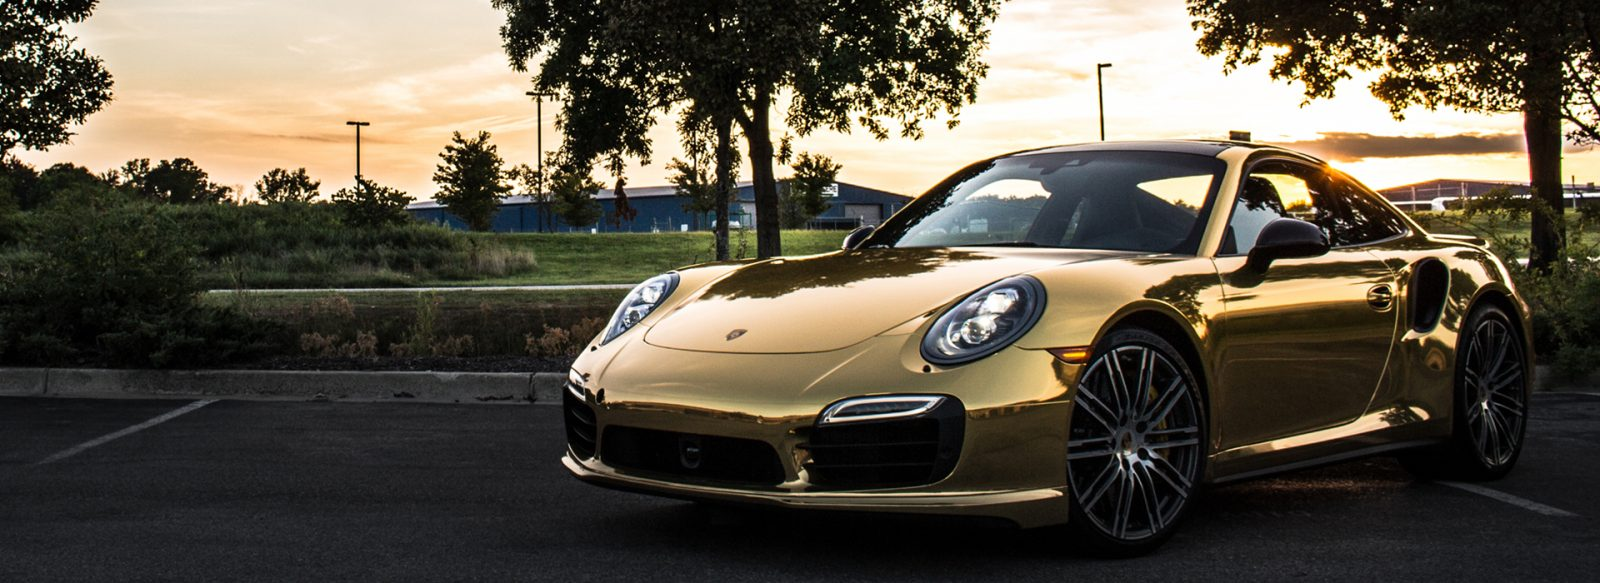 evw-gold-chrome-turbo-s-slider-wm